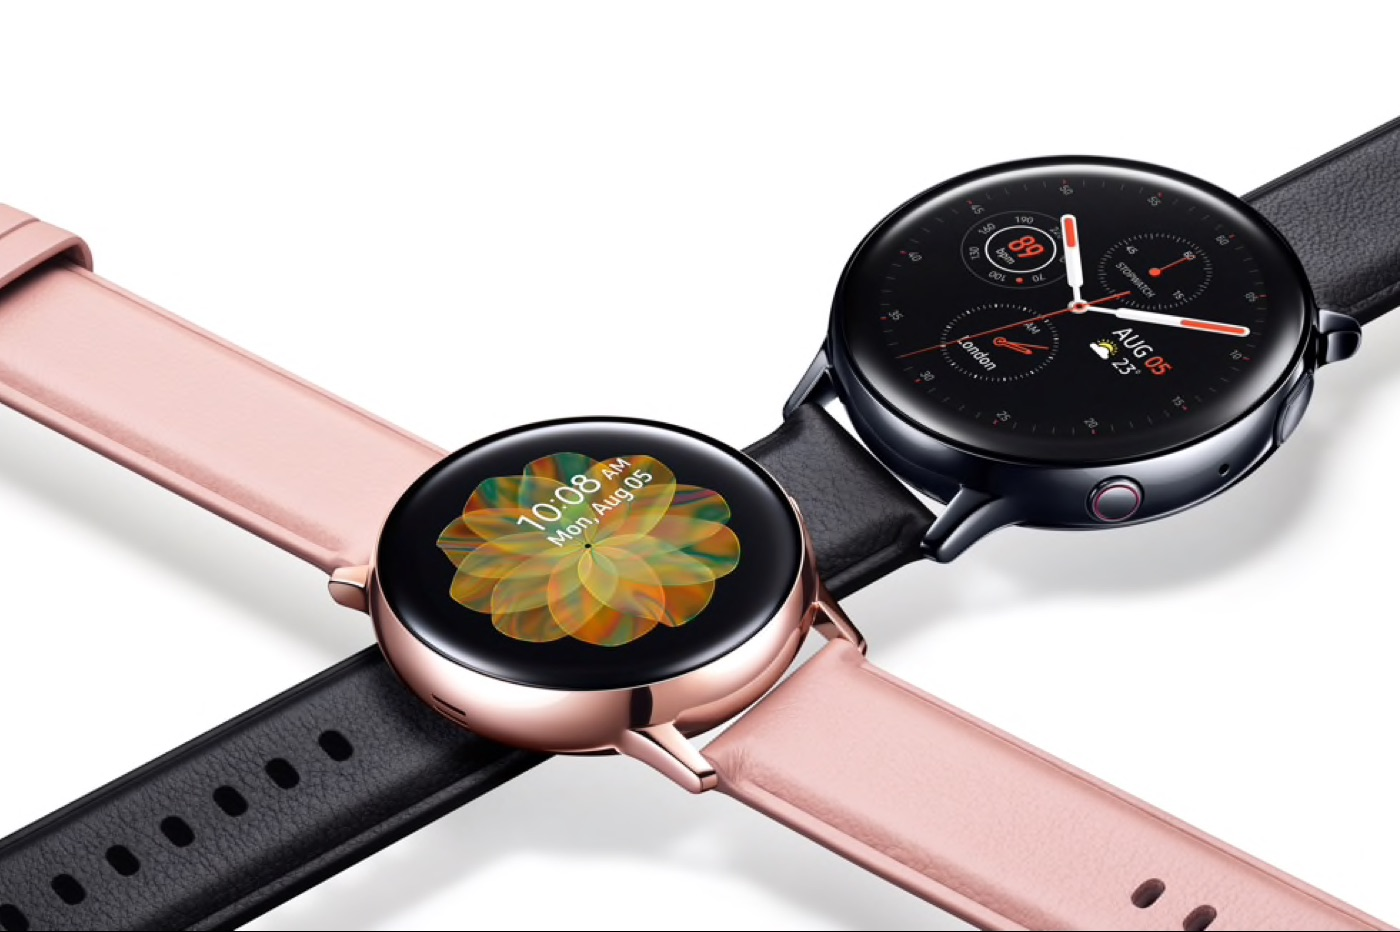 Samsung montre Galaxy Watch Active 2 rose et noire